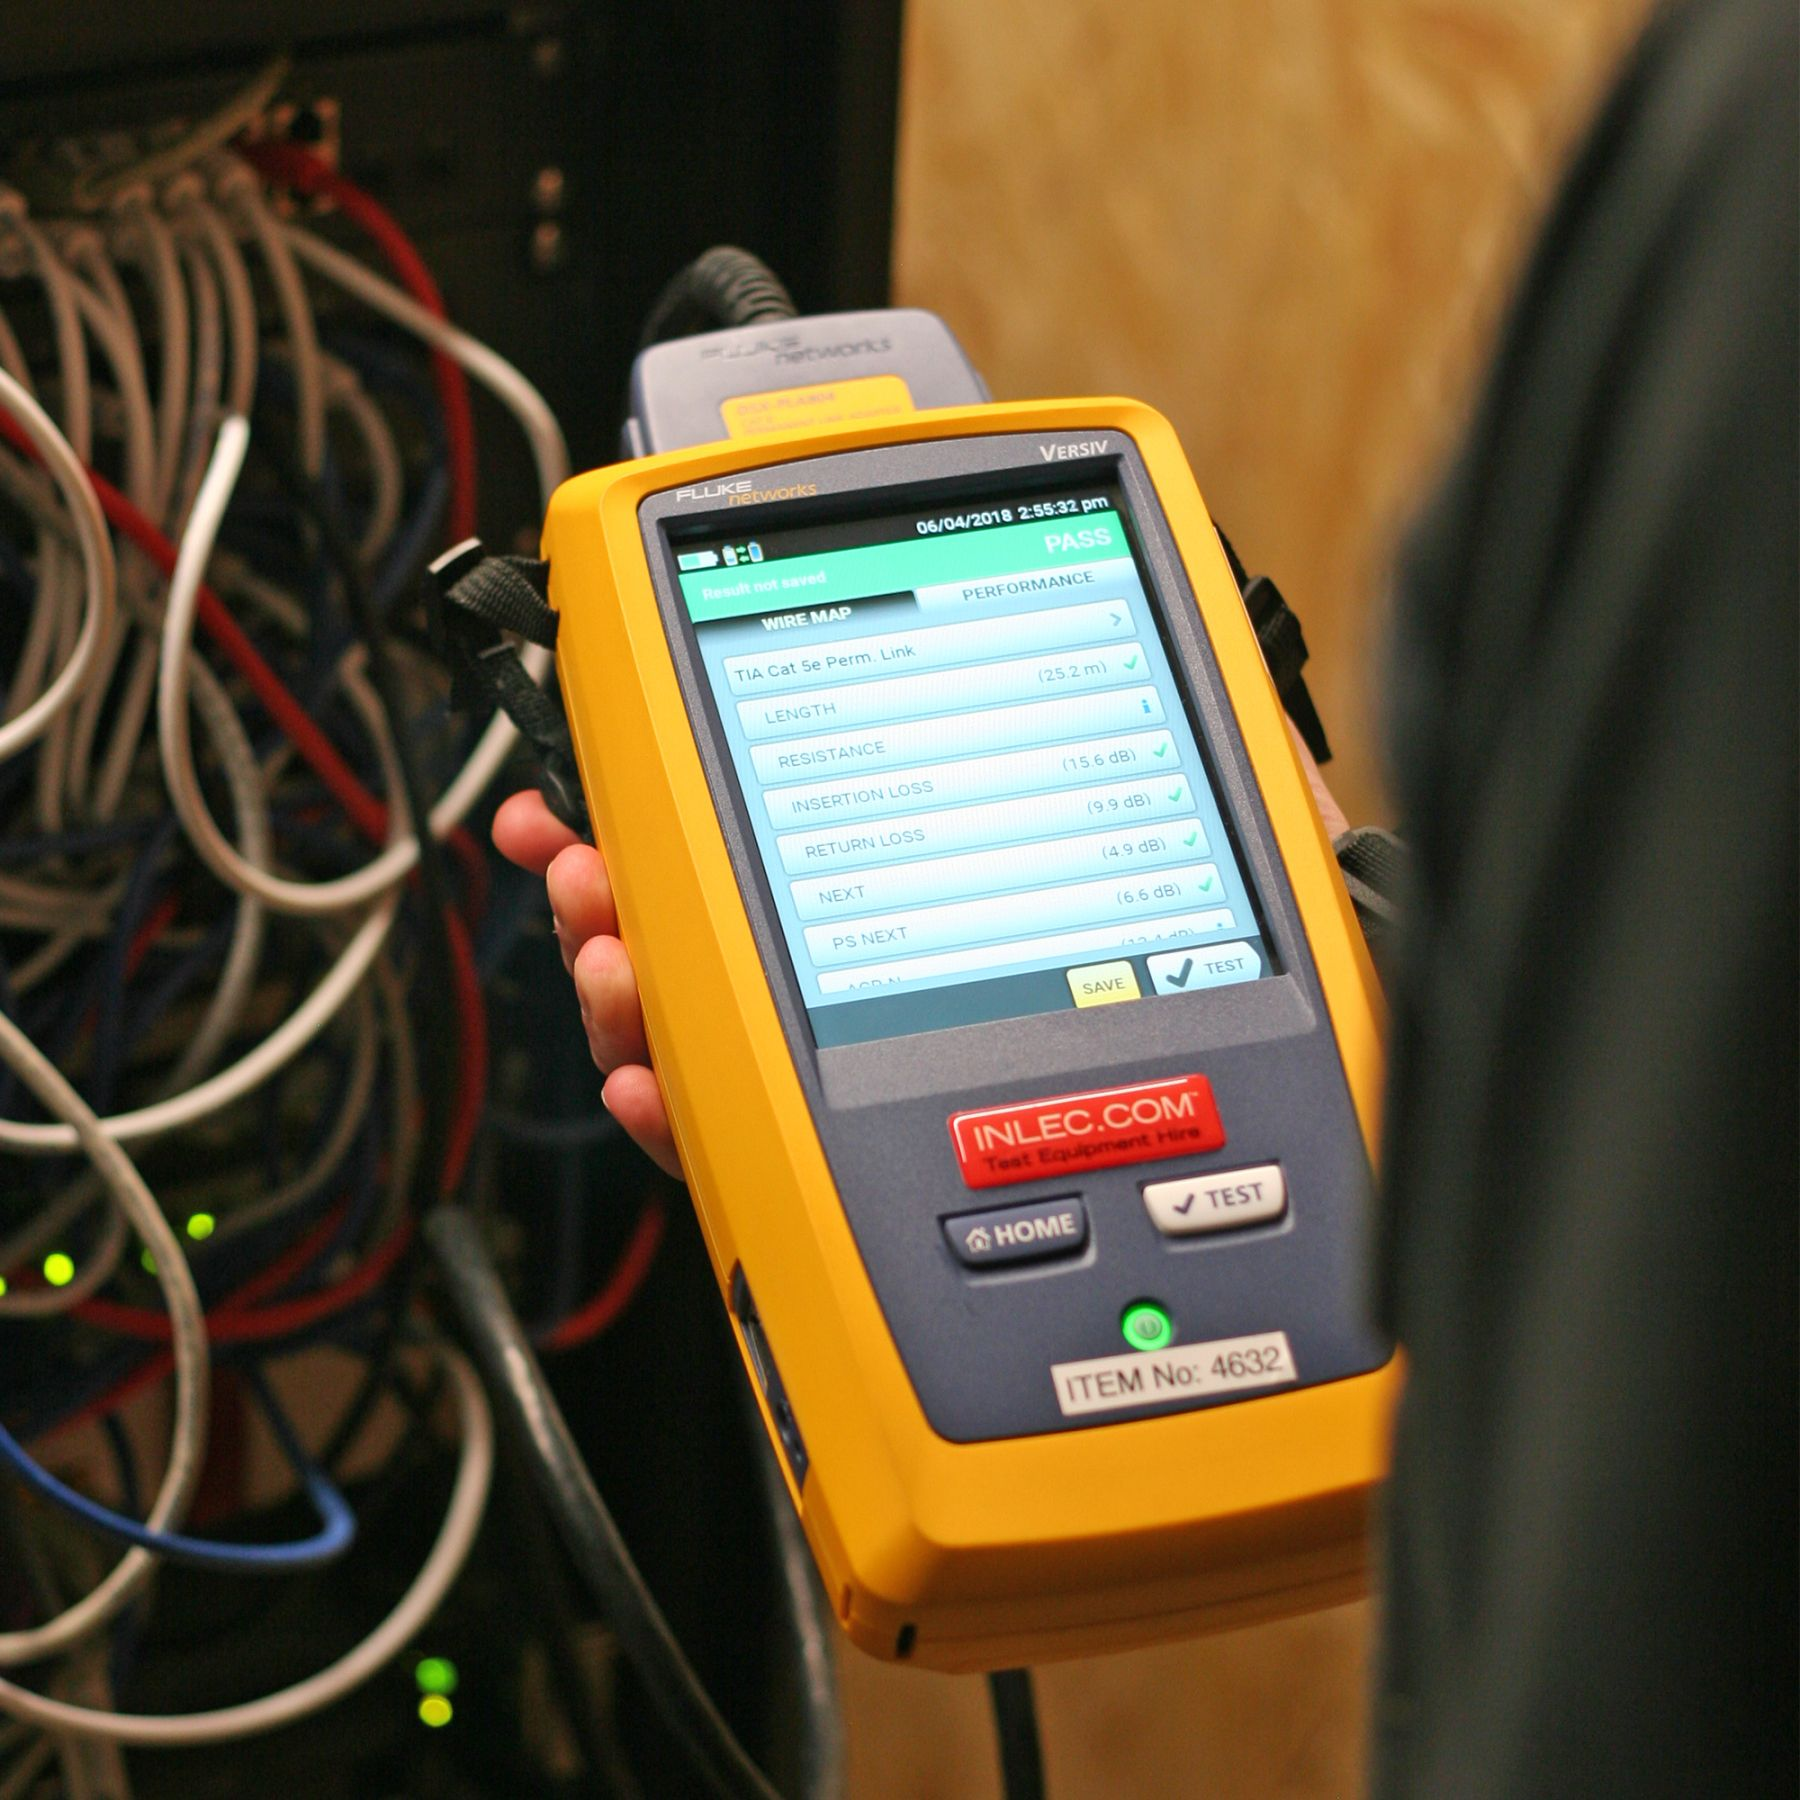 Fluke Dsx 8000 Cable Analyzer Next Day Delivery Hire